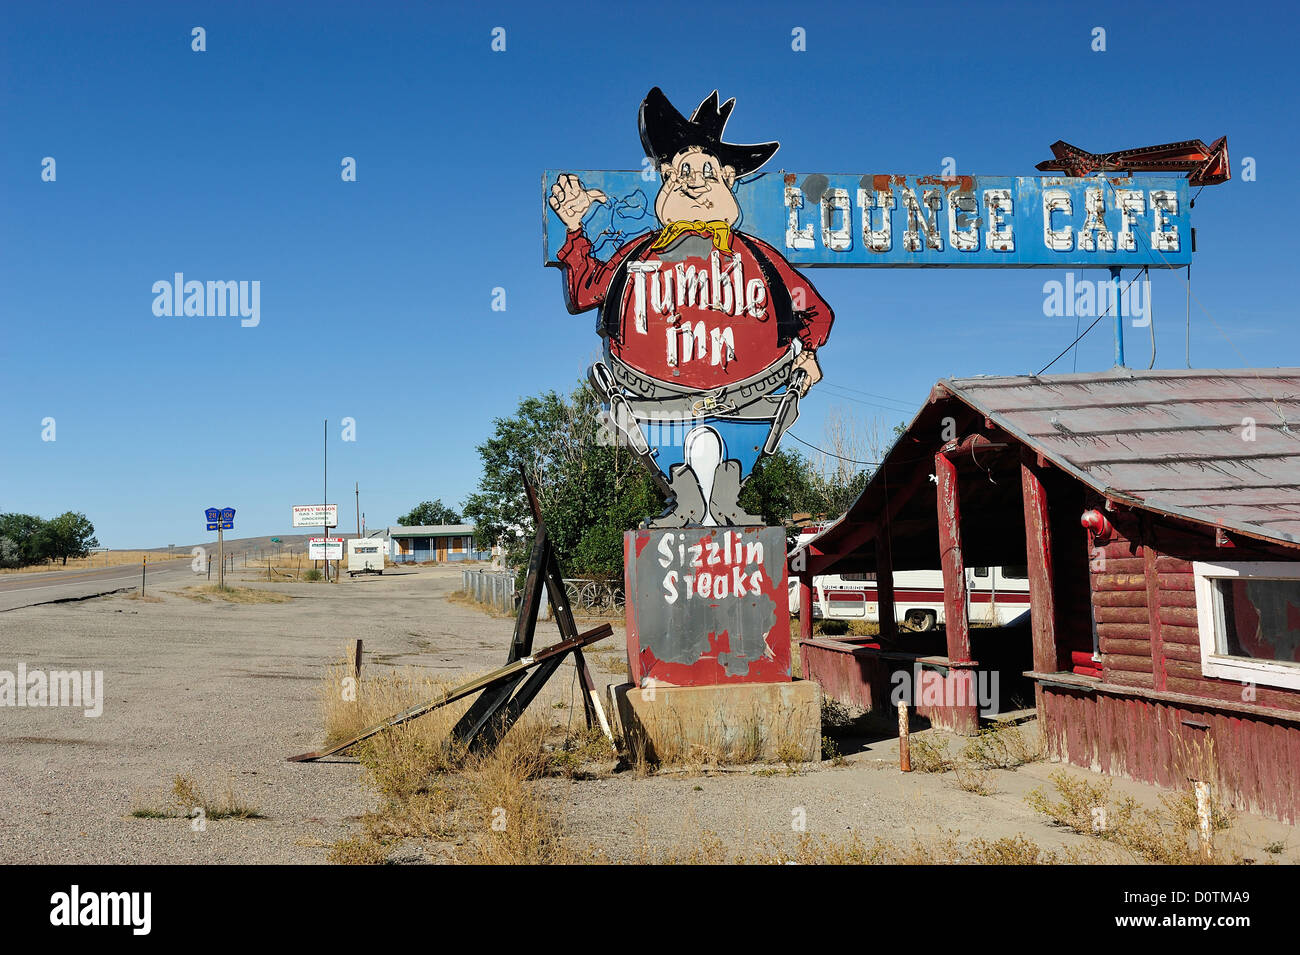 American, West, Abandoned cafe, Americana, decay, ghost town, lounge cafe, rural highway, empty - Stock Image